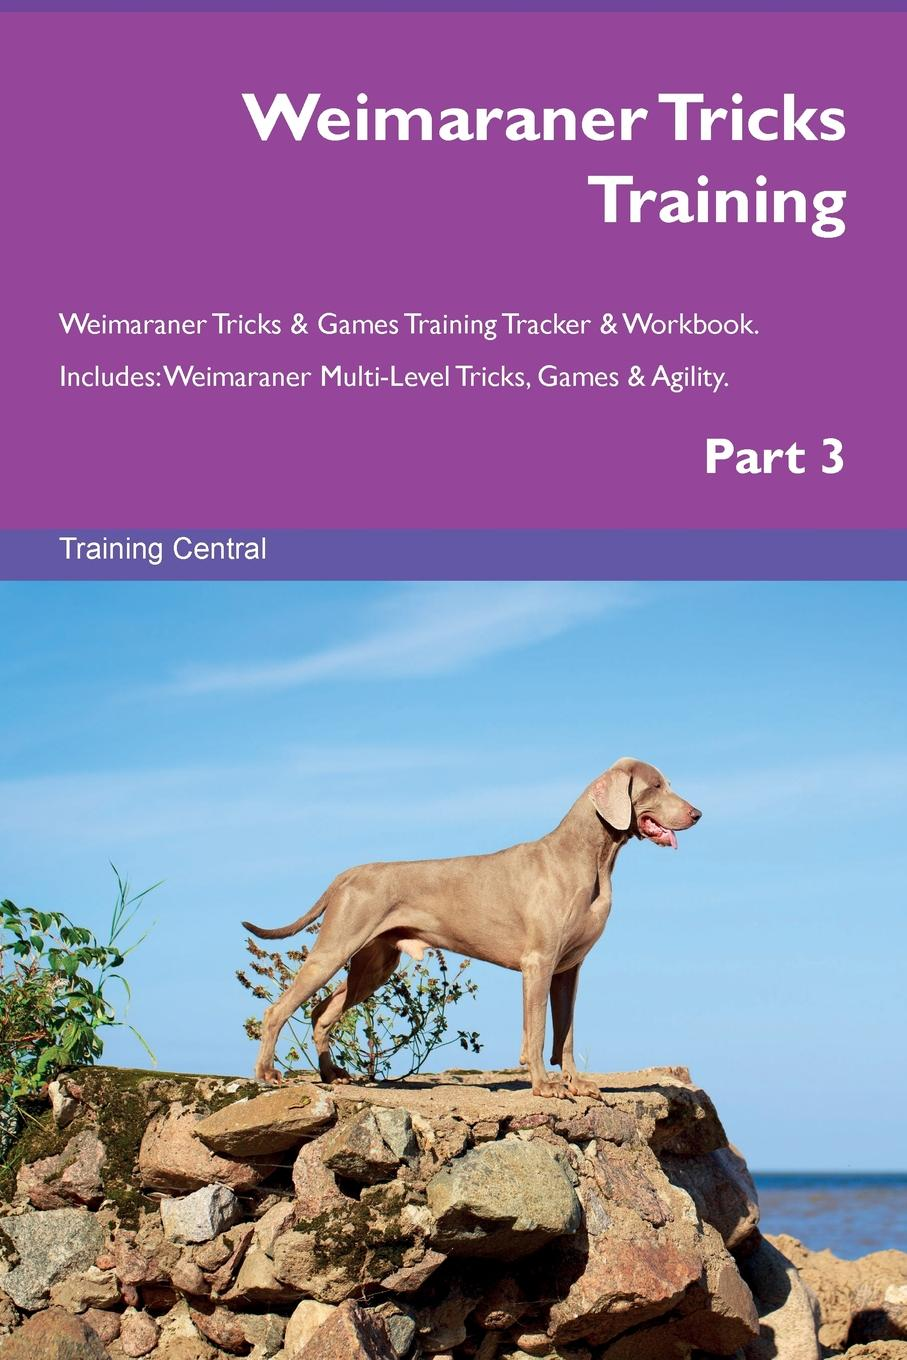 Training Central Weimaraner Tricks Training Weimaraner Tricks . Games Training Tracker . Workbook. Includes. Weimaraner Multi-Level Tricks, Games . Agility. Part 3 this book loves you